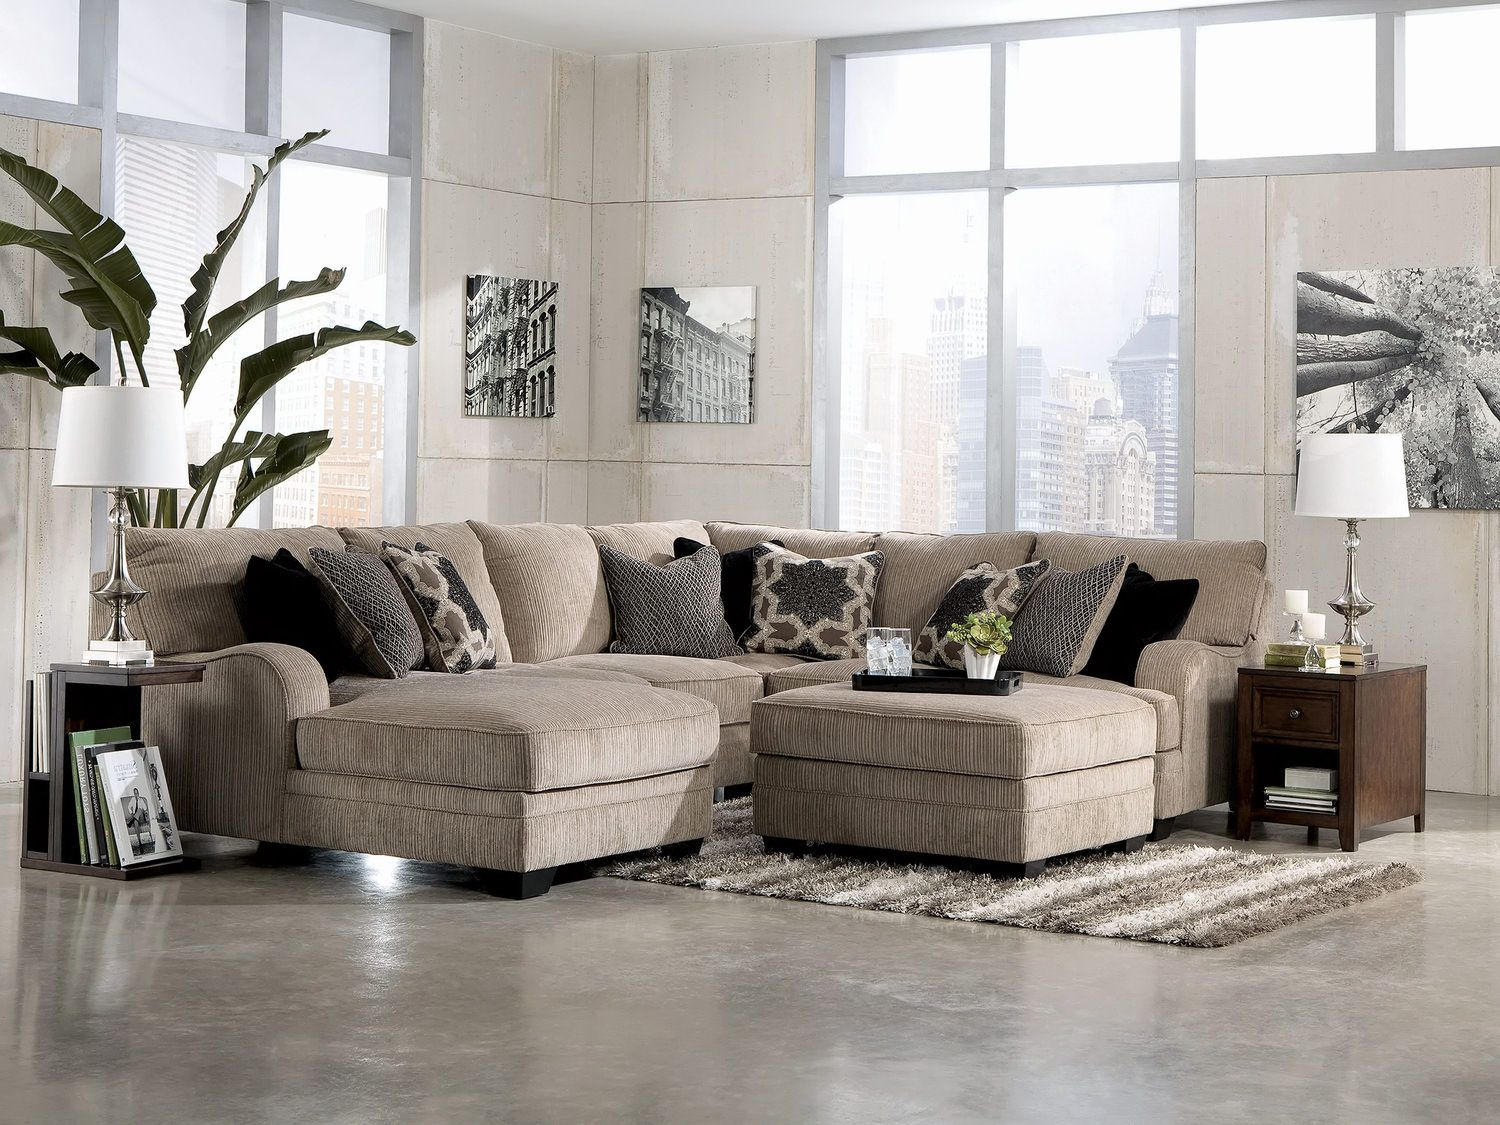 Tisha 4 Piece Sectional With Free Storage Ottoman At HOM Furniture | Furniture  Stores In Minneapolis